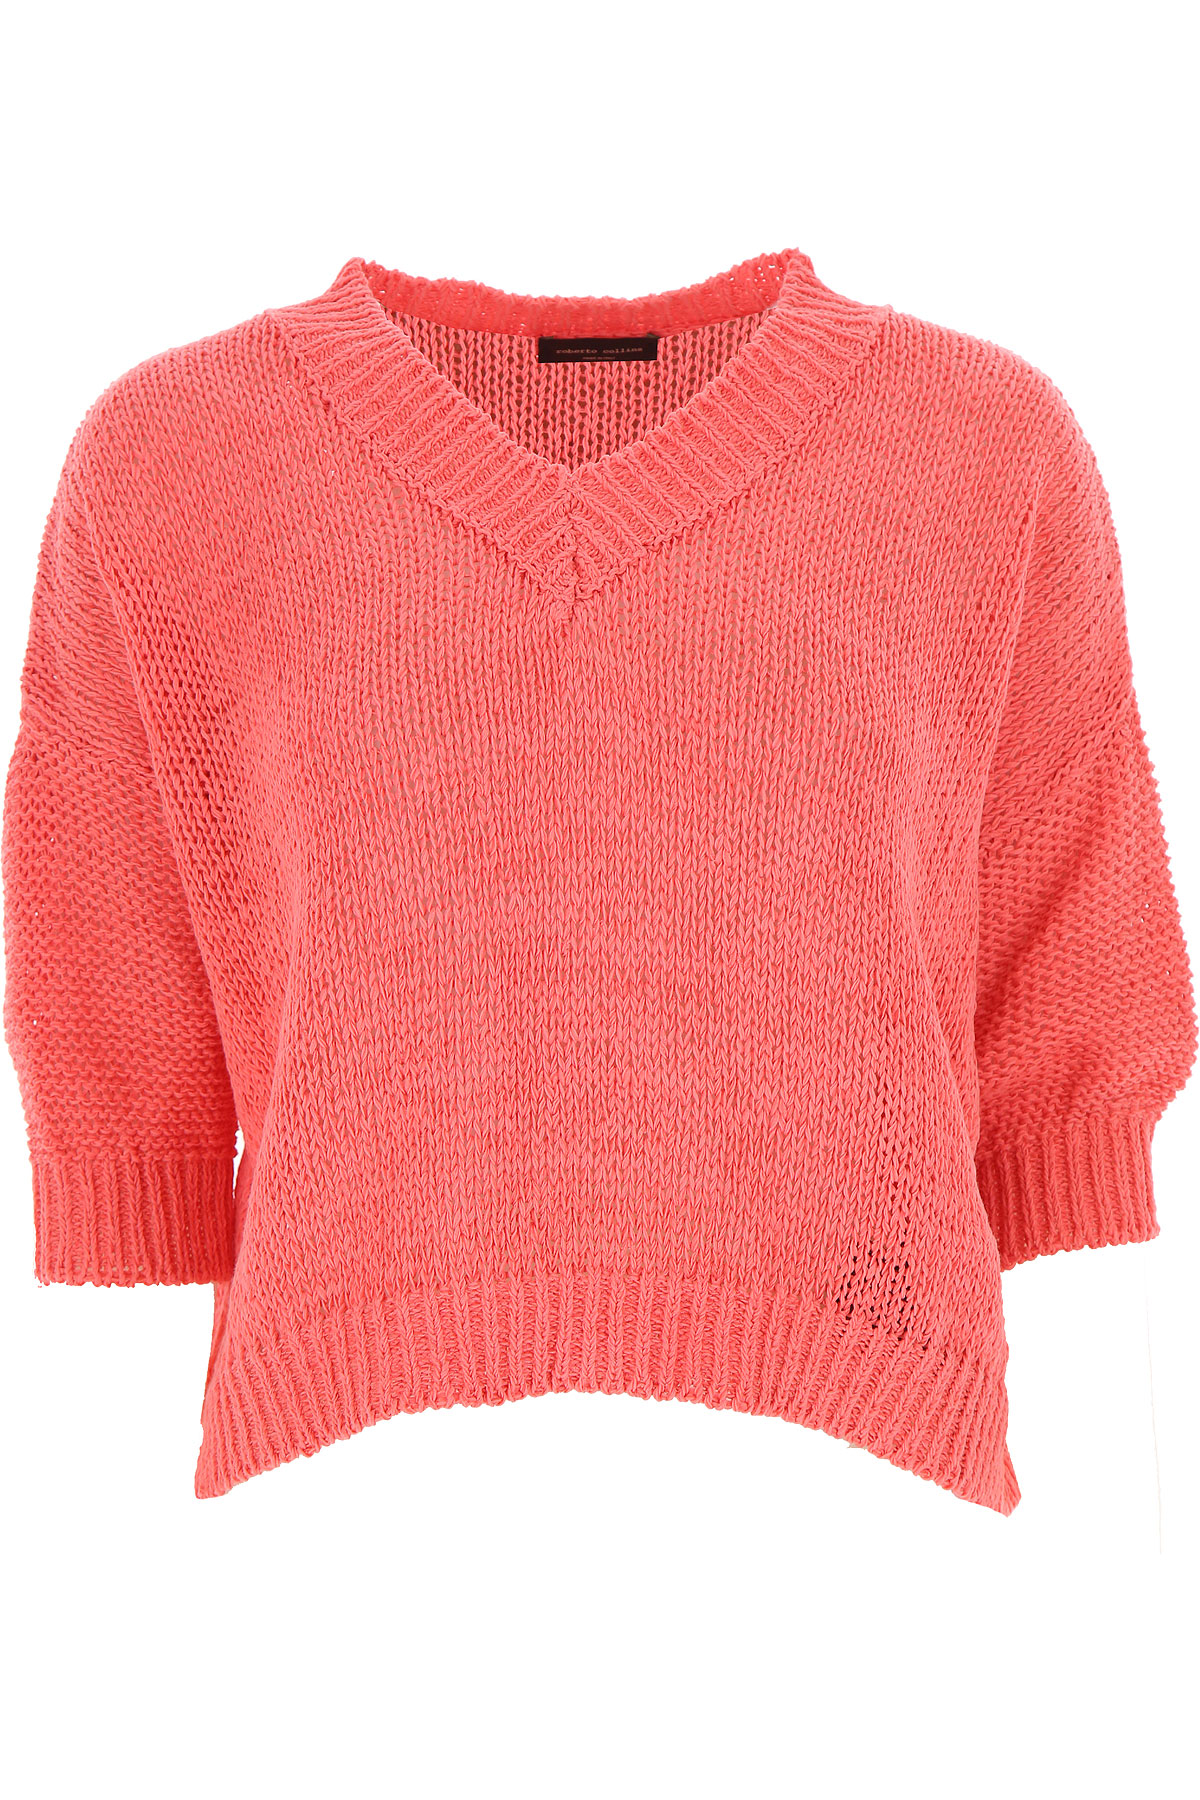 Roberto Collina Sweater for Women Jumper On Sale, Coral Pink, Cotton, 2019, 4 8 XS